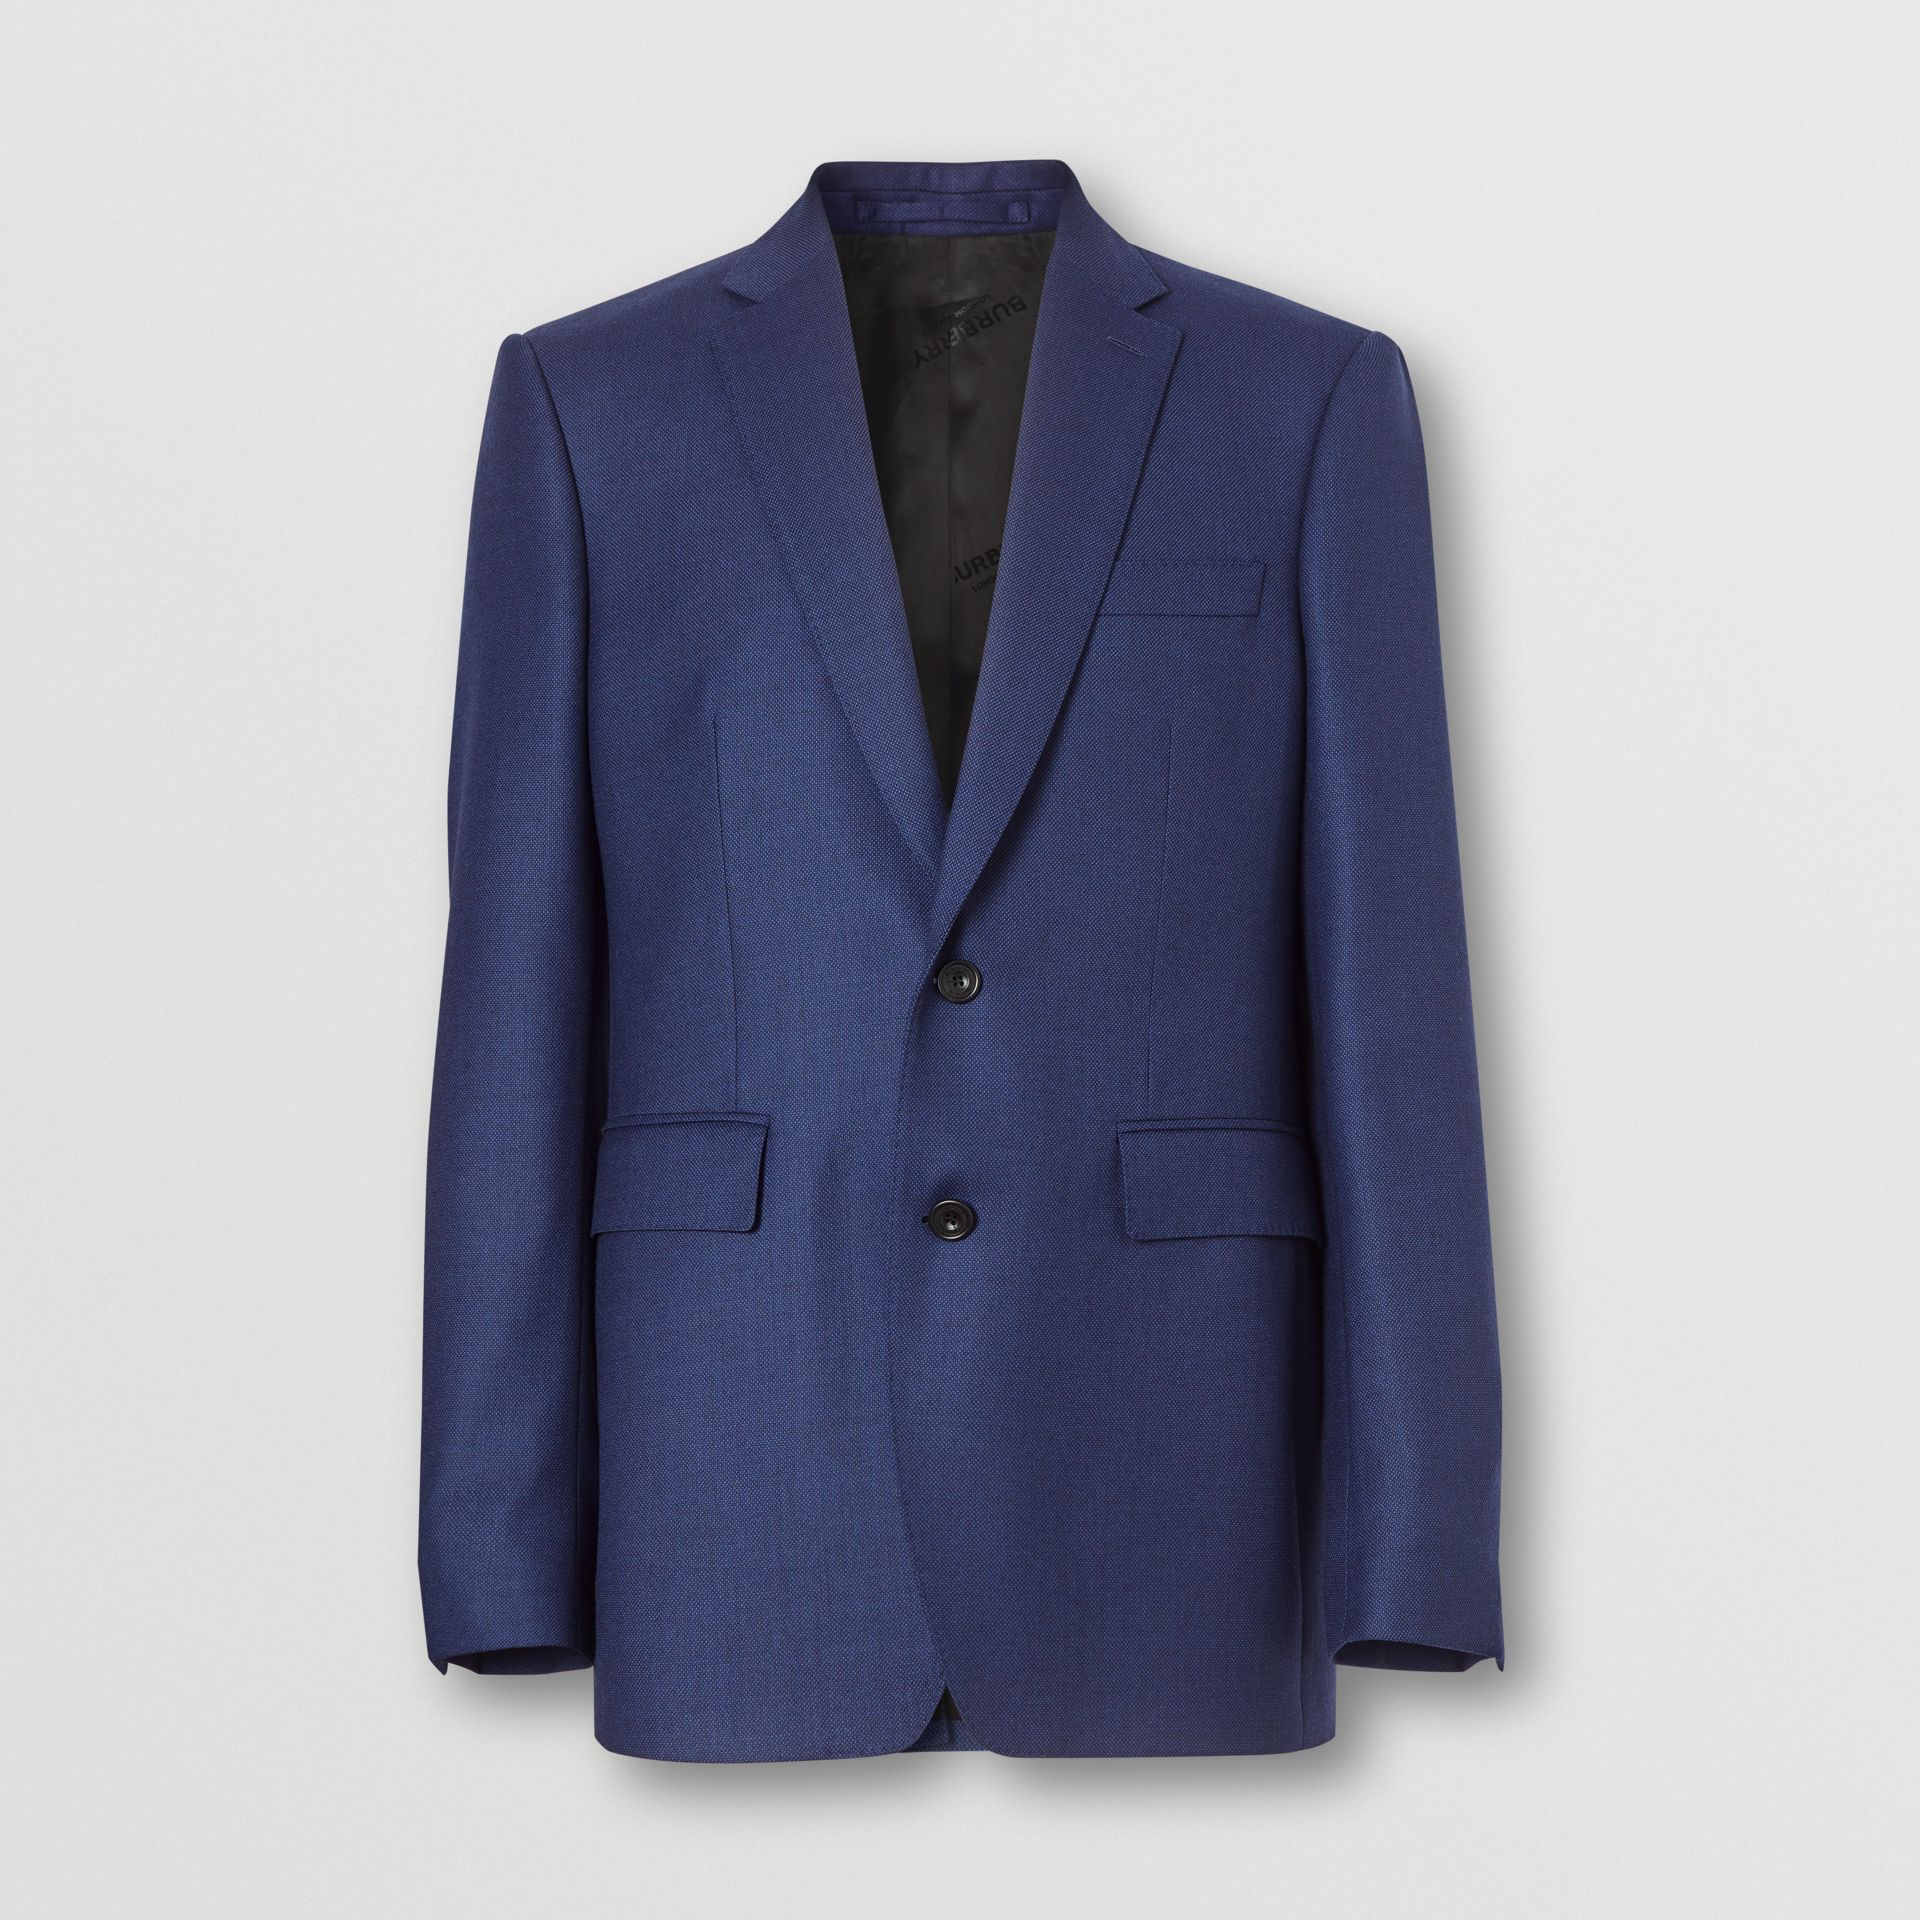 Classic Fit Birdseye Wool Tailored Jacket in Bright Navy - Men | Burberry - gallery image 3